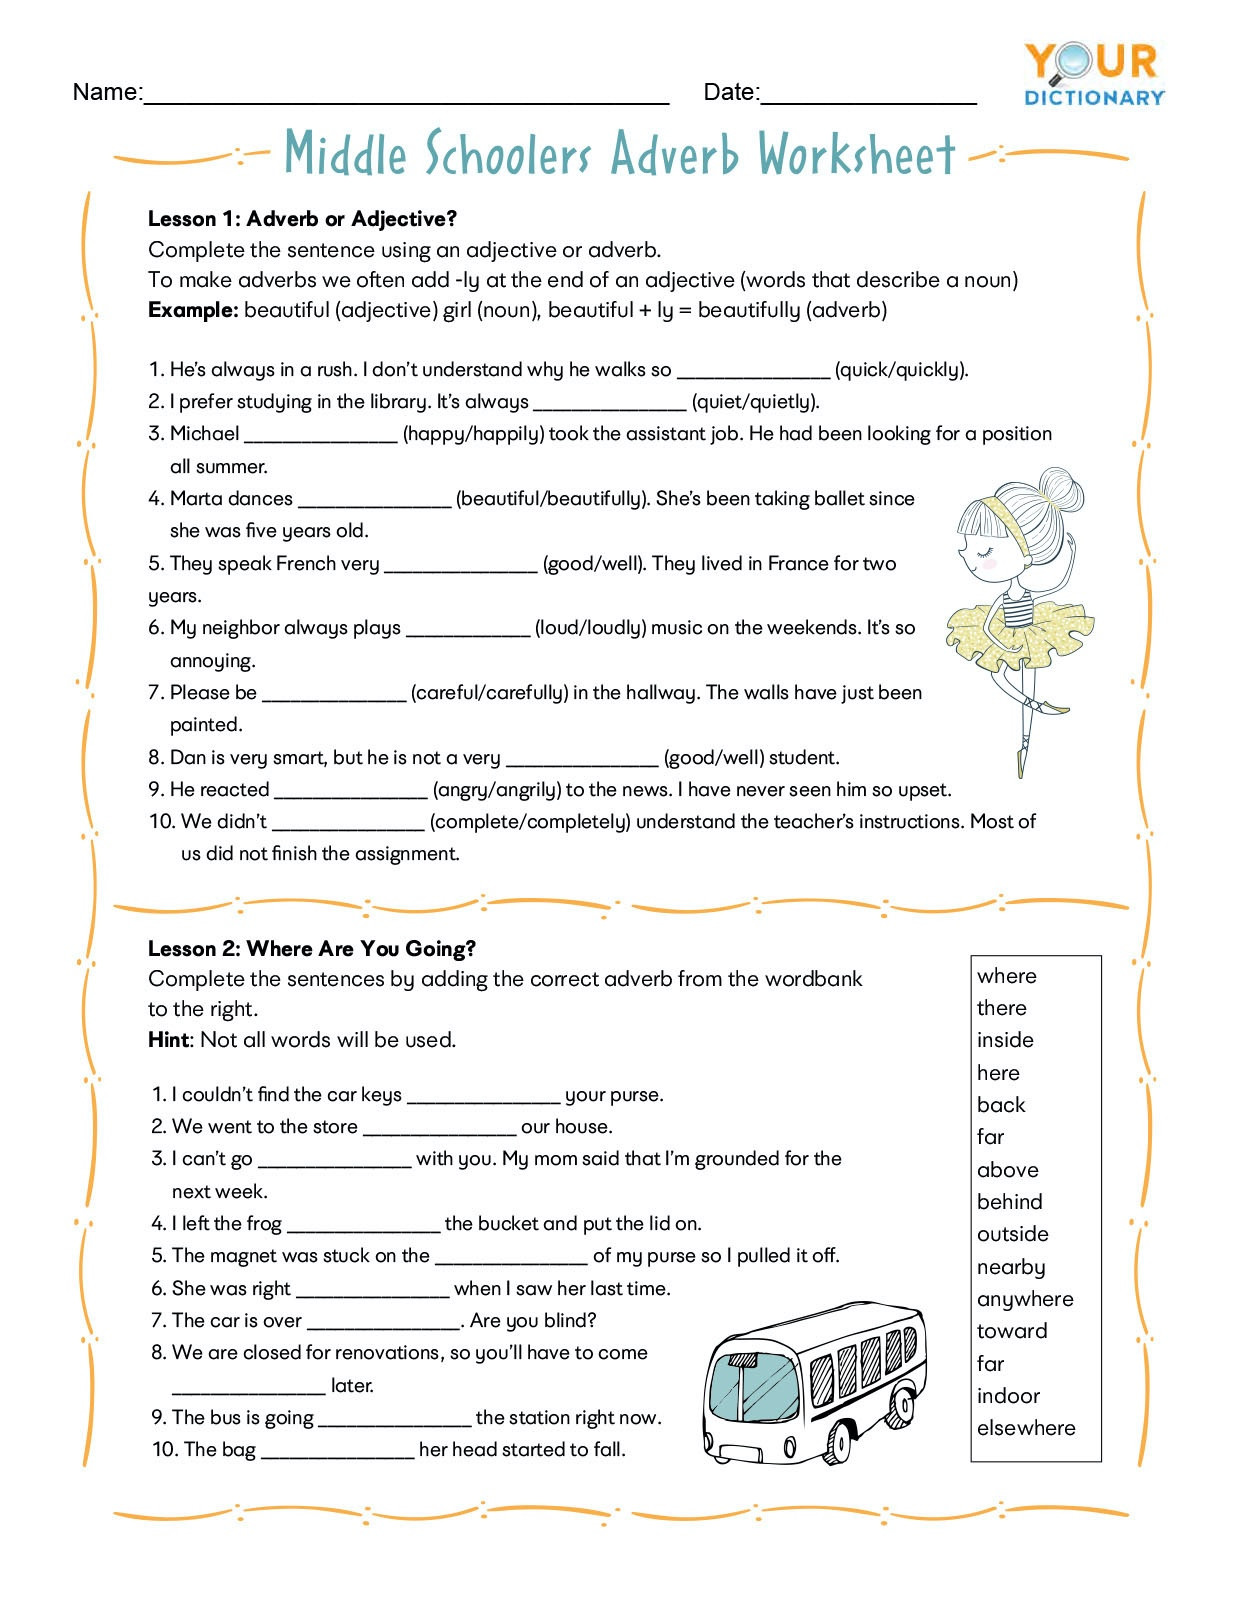 Grammar Worksheets for Grade 6 Adverb Worksheets for Elementary and Middle School